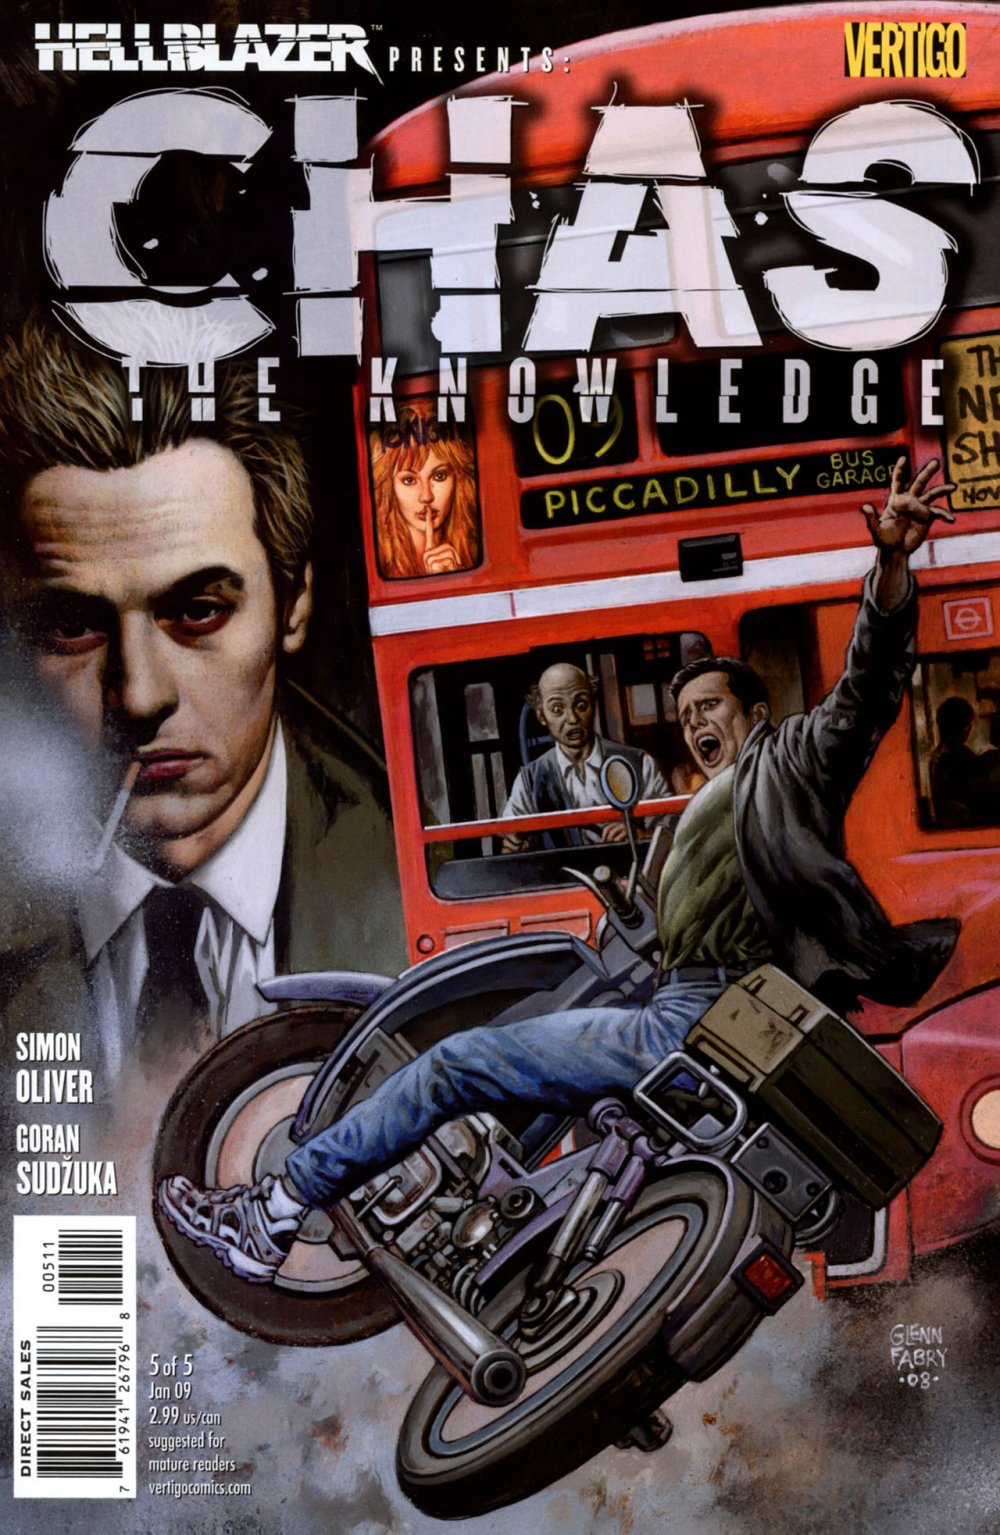 Hellblazer Presents Chas- The Knowledge [DC Vertigo] Mini 1 0005.jpg